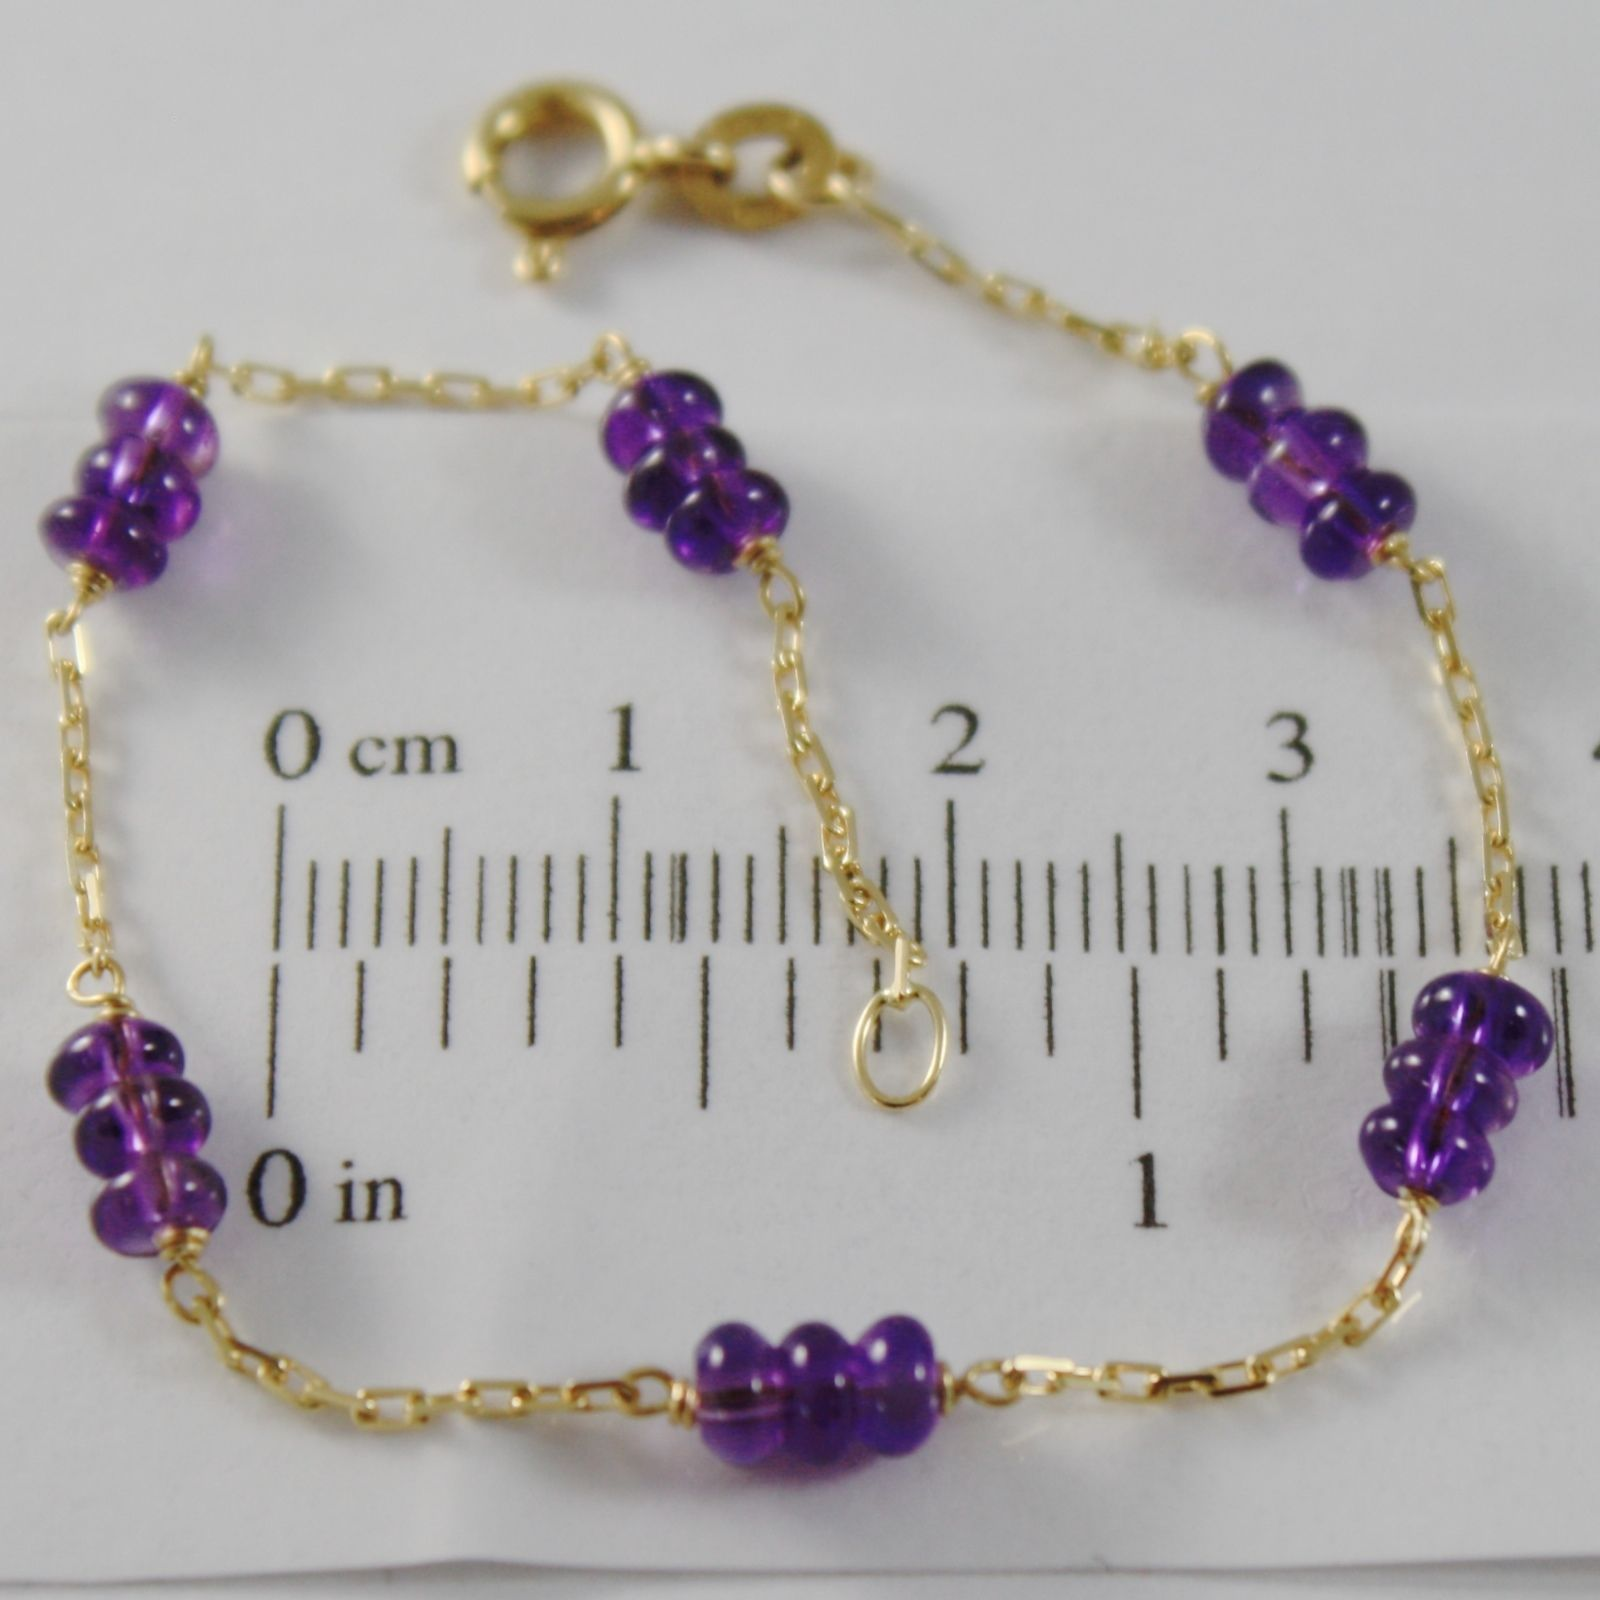 18K YELLOW GOLD BRACELET 7.1 INCHES SQUARED CHAIN & AMETHYST, MADE IN ITALY